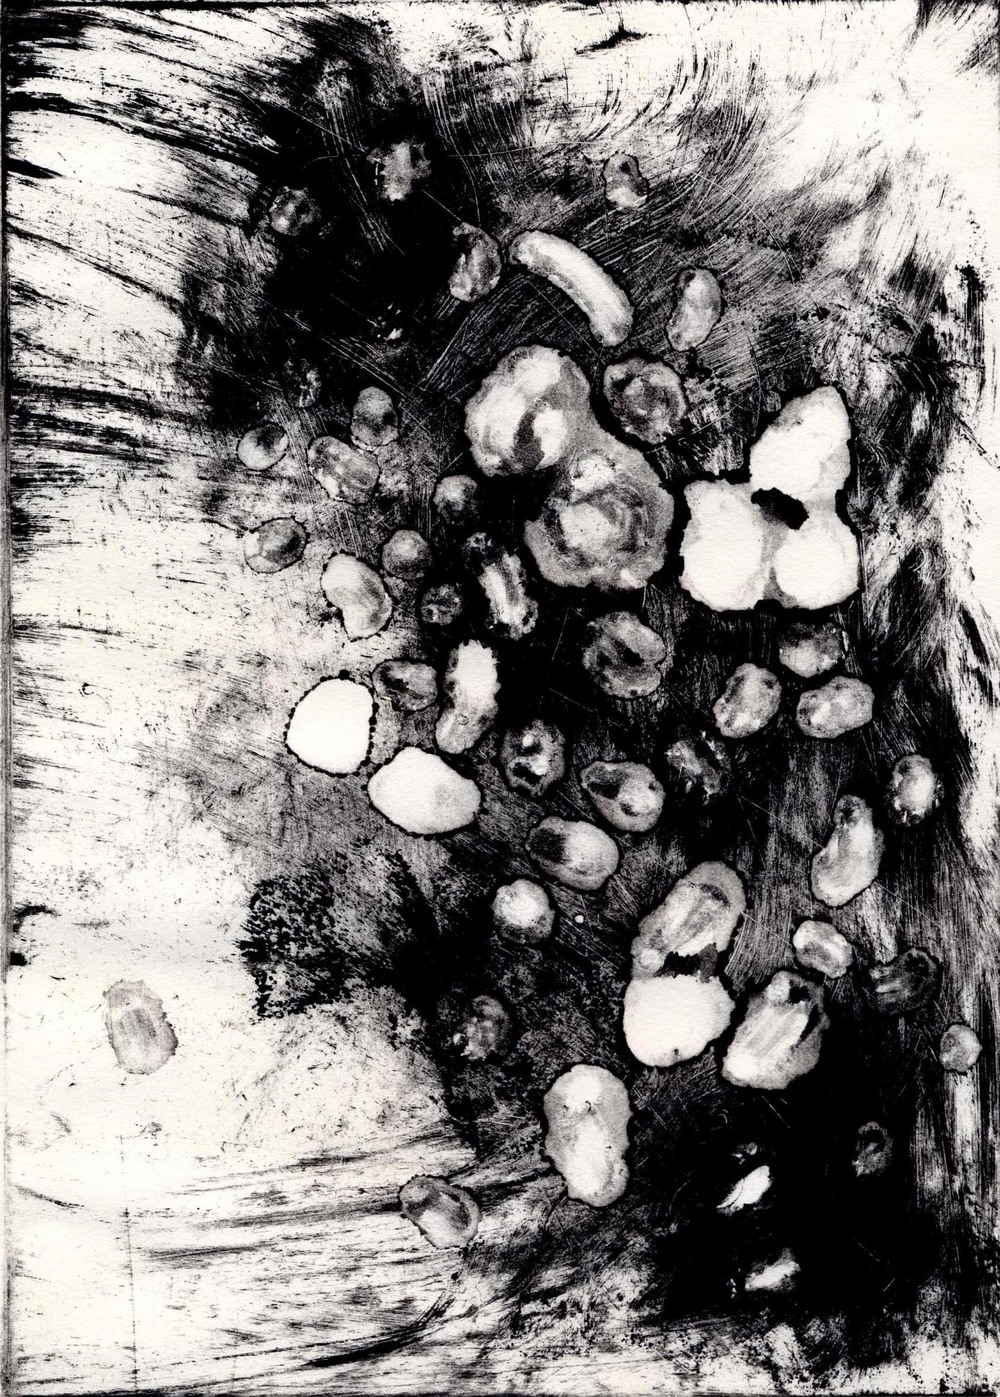 Us, No. 7  monotype: etching ink on Rives BFK Lightweight Off-White paper; compositions: 20 x 14.5cm; pages: 31.5 x 24cm